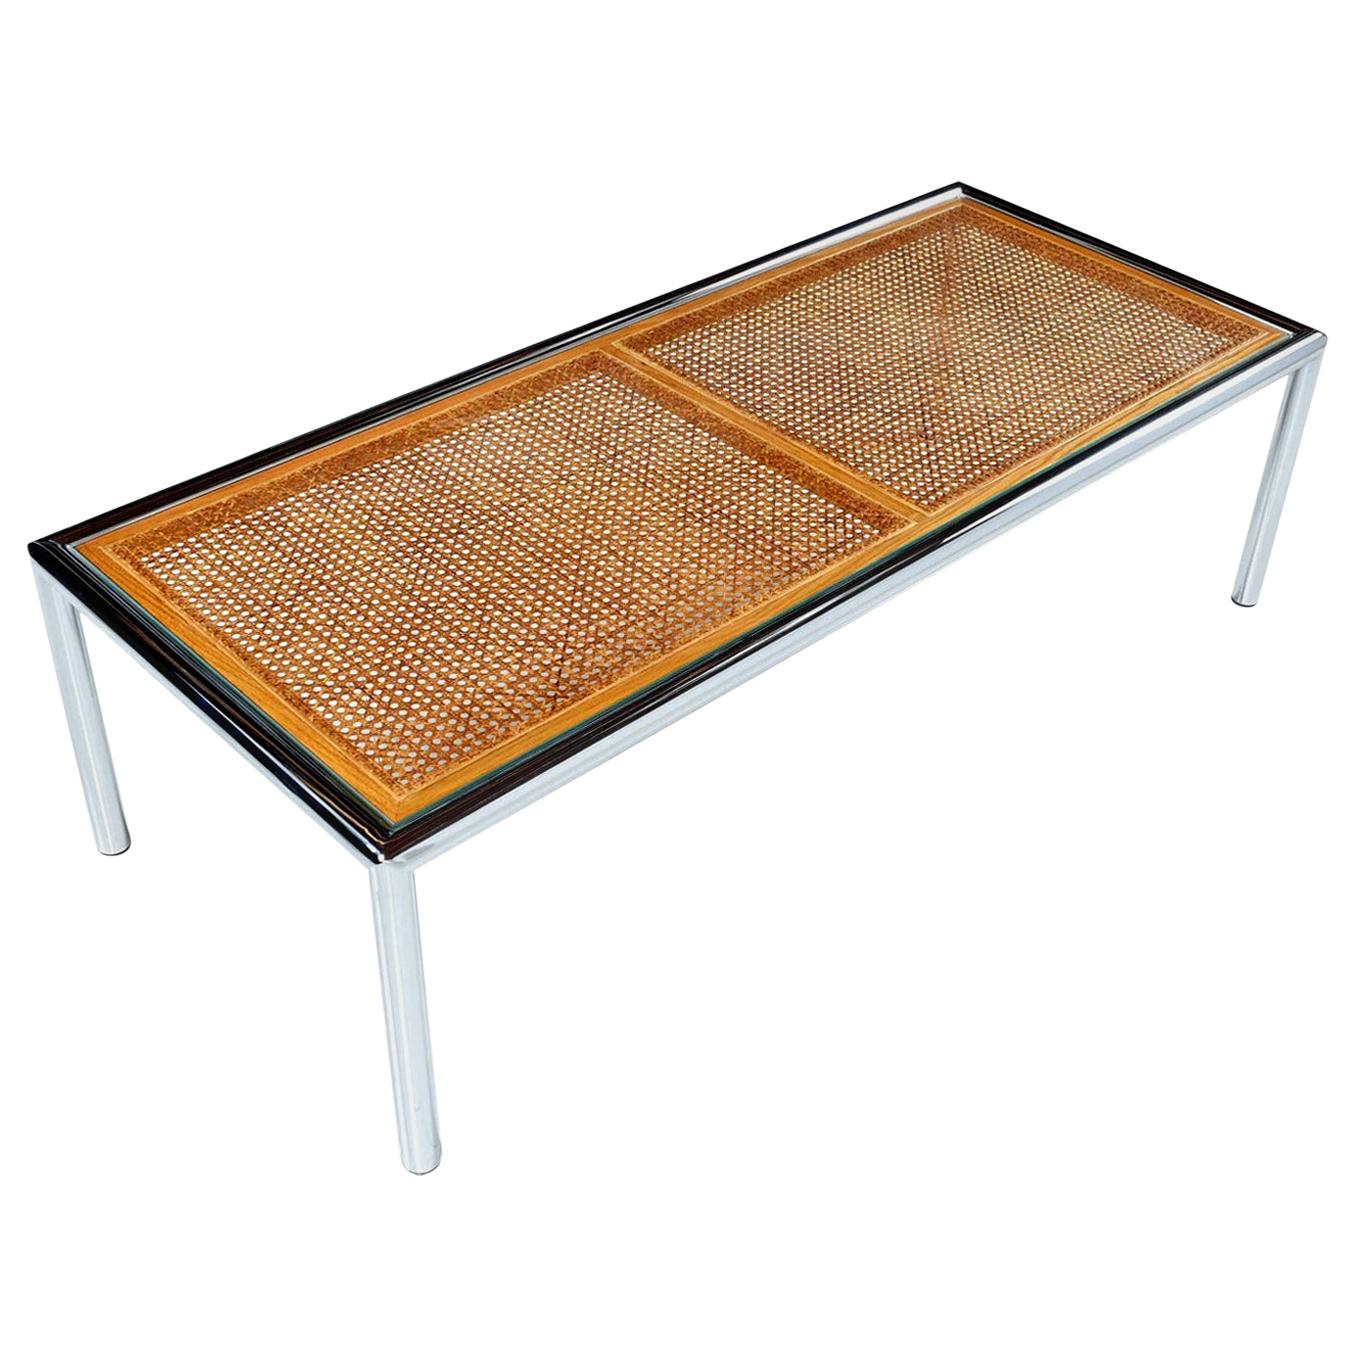 1970s Tubular Chrome Cane Glass for Design Institute Coffee Table